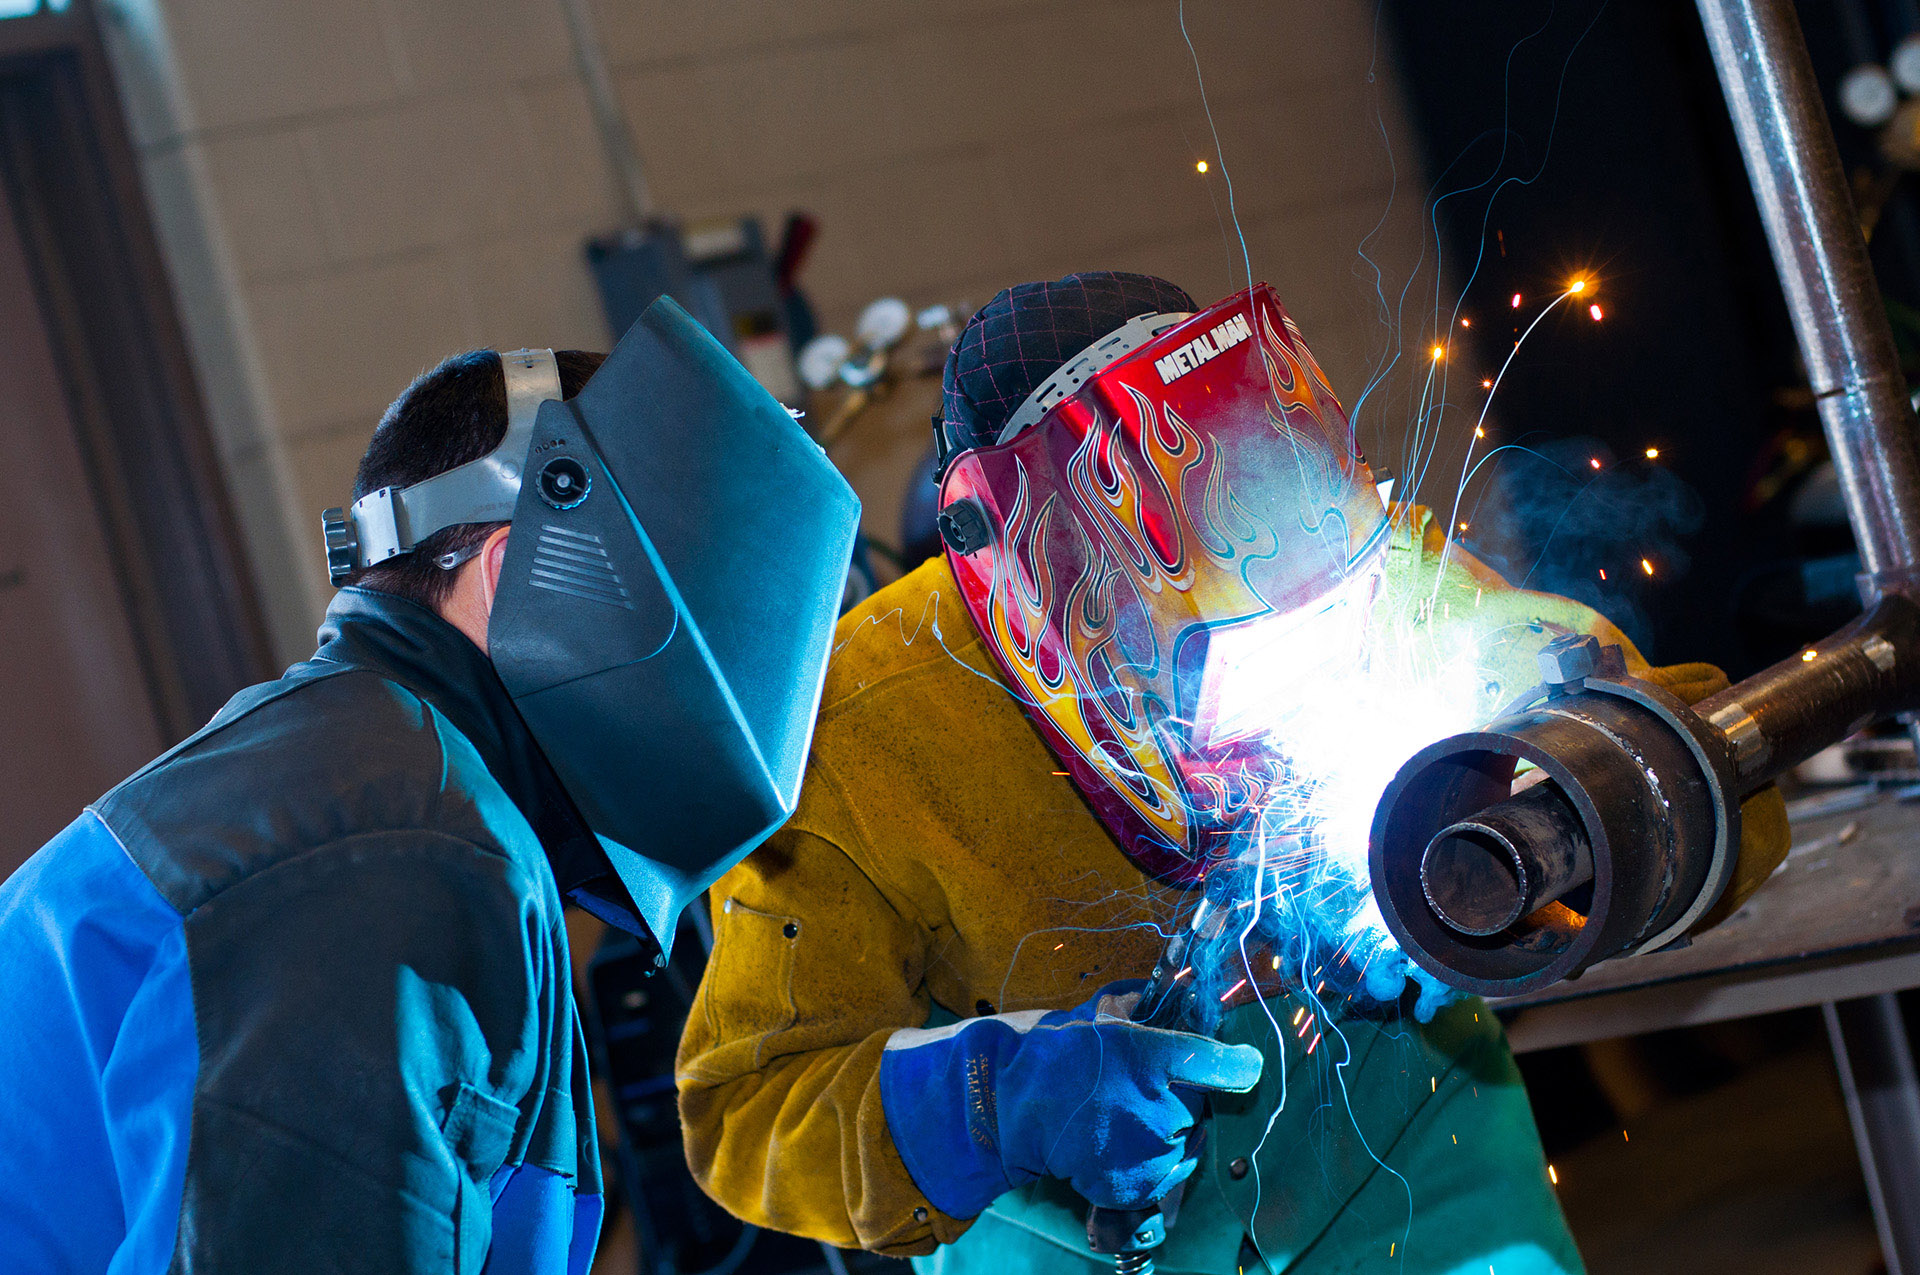 Two students welding with sparks flying